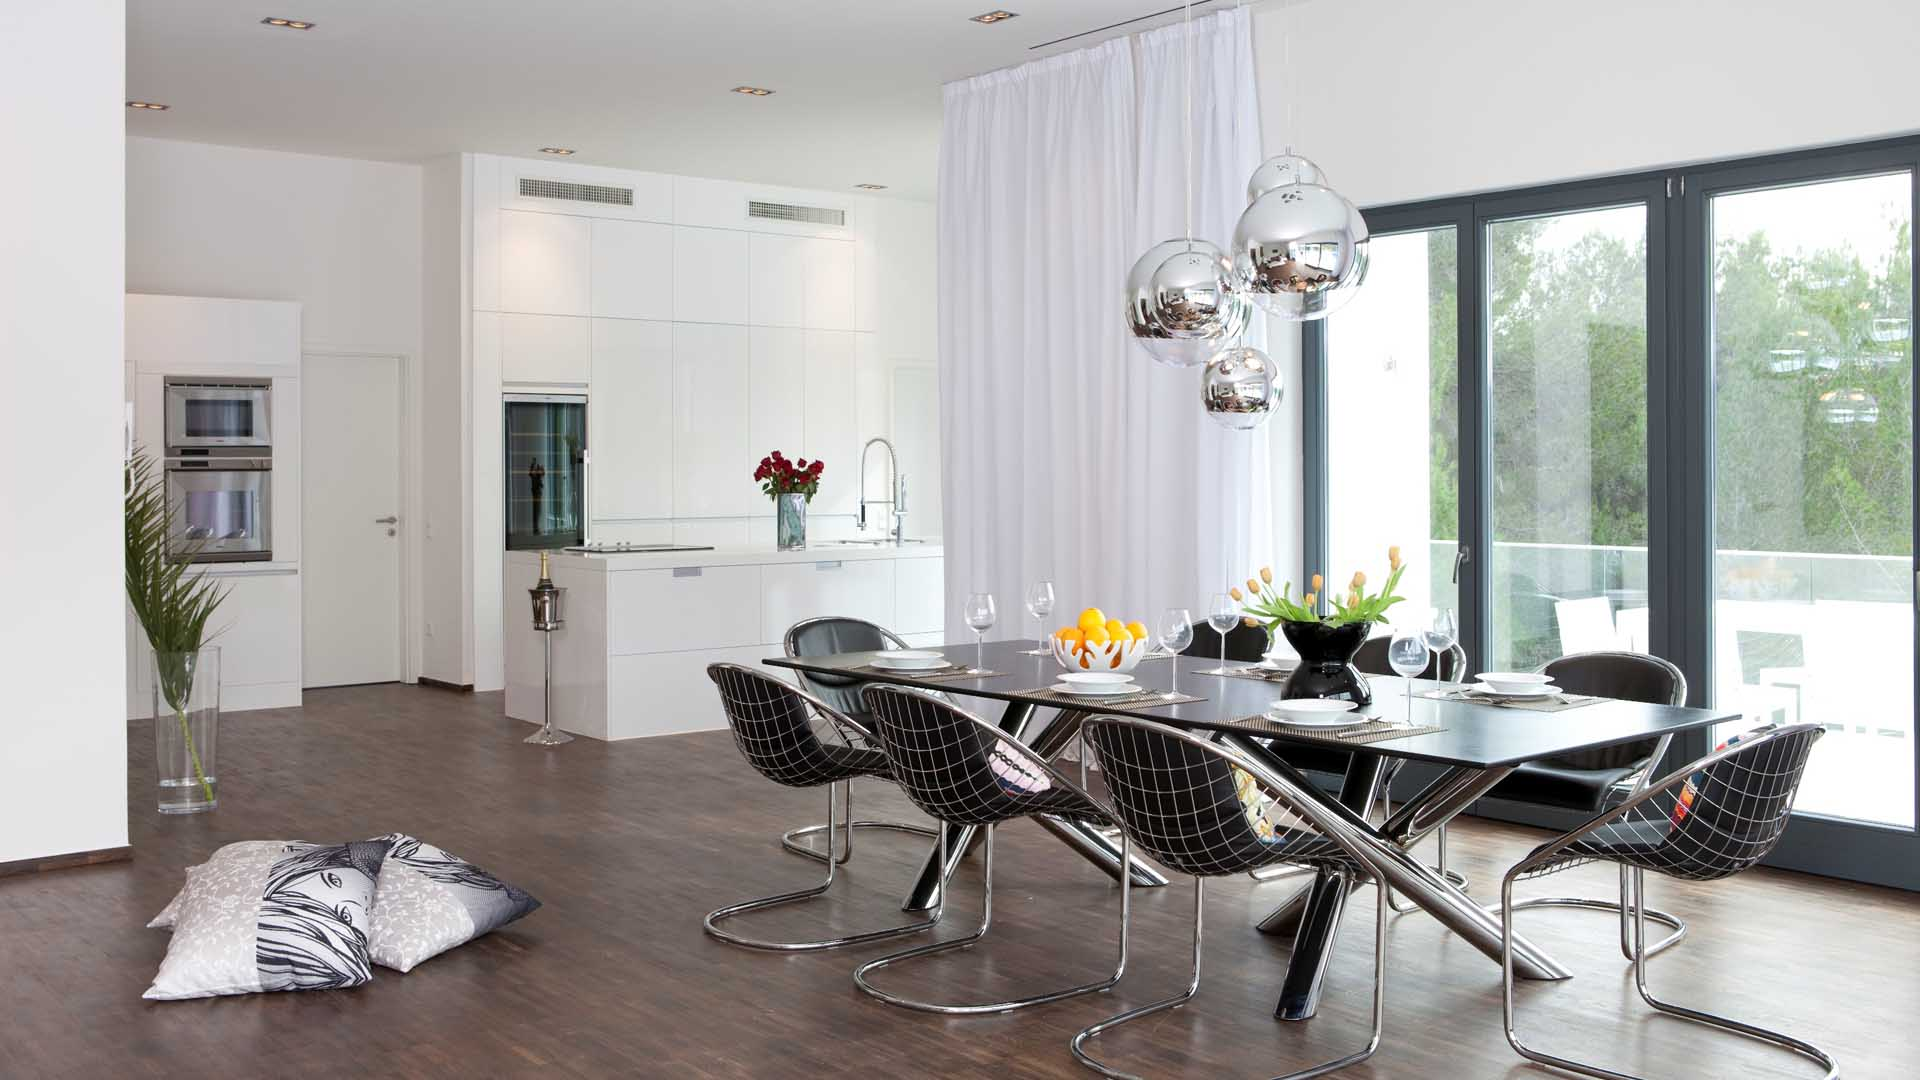 Dining Room Inspiration Cool Silver Balls Hanging Dining Lamps Over Long Dining Table With 8 Unique Dining Armchairs Stainless Legs On Wooden Floors And White Sliding Curtain Widow